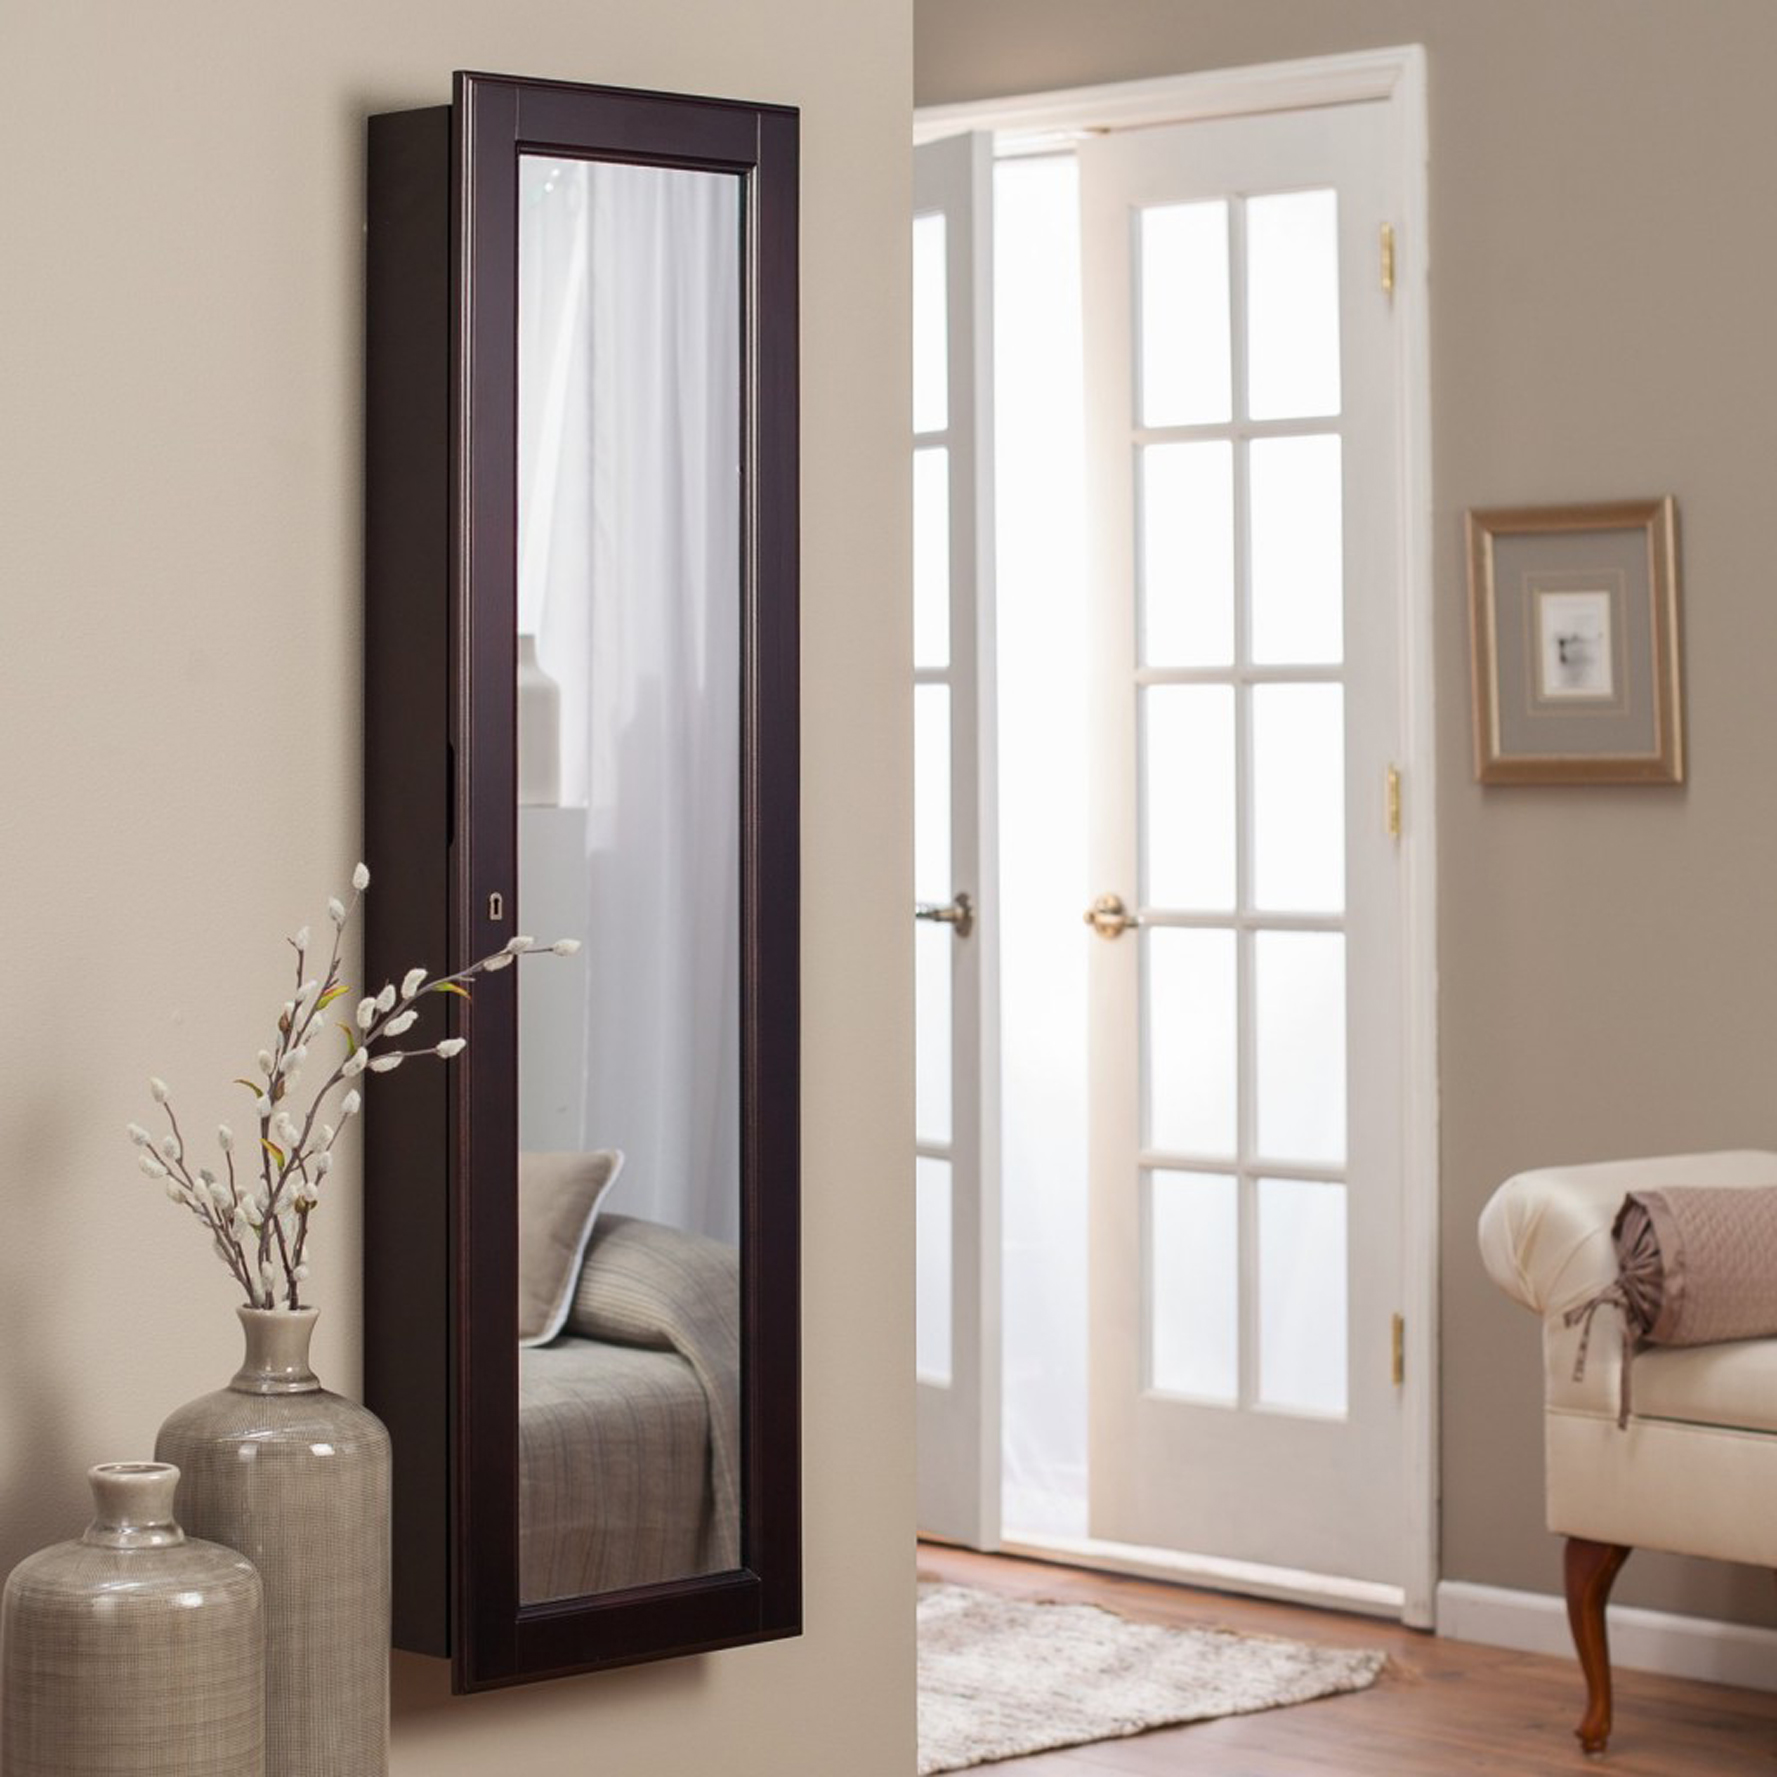 Floor to ceiling mirrors as functional and decorative for Wall size mirror